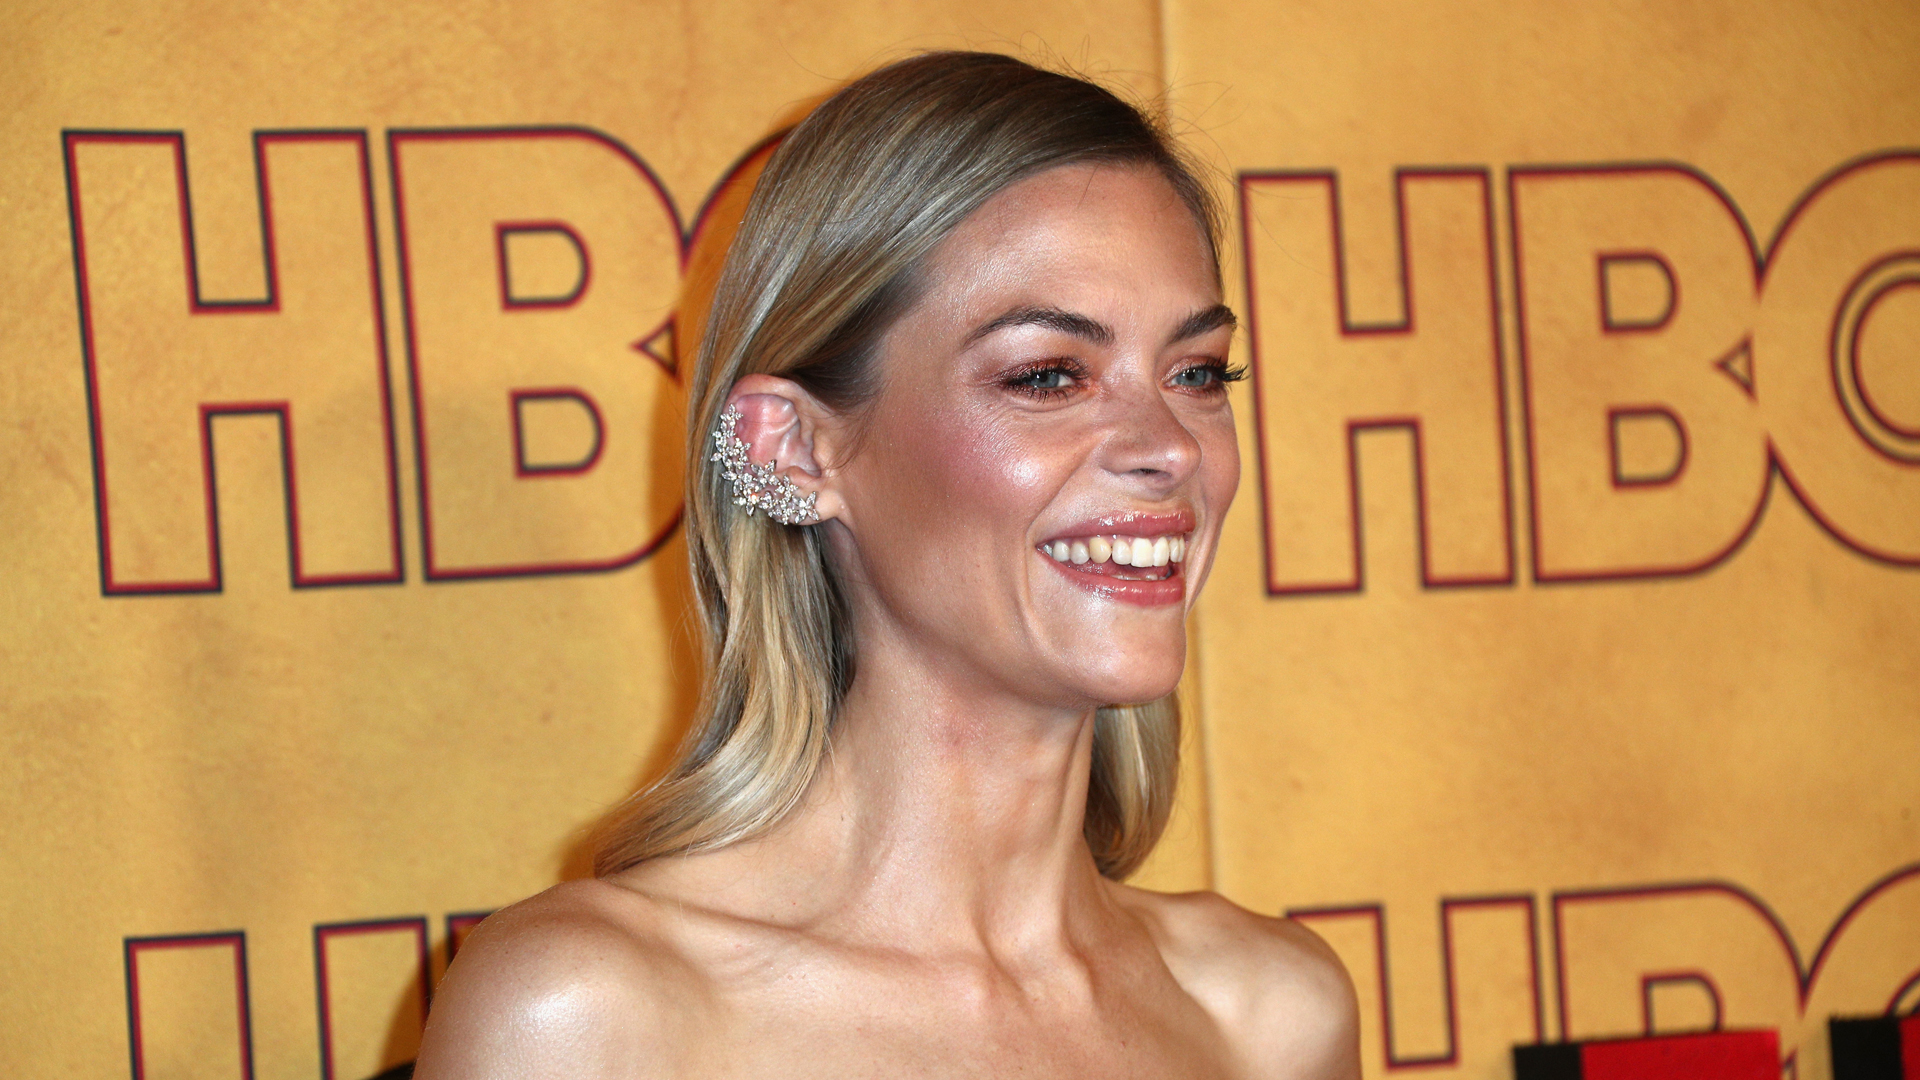 Jaime King attends HBO's Post Emmy Awards Reception at The Plaza at the Pacific Design Center on September 17, 2017 in Los Angeles. (Credit: Frederick M. Brown/Getty Images)